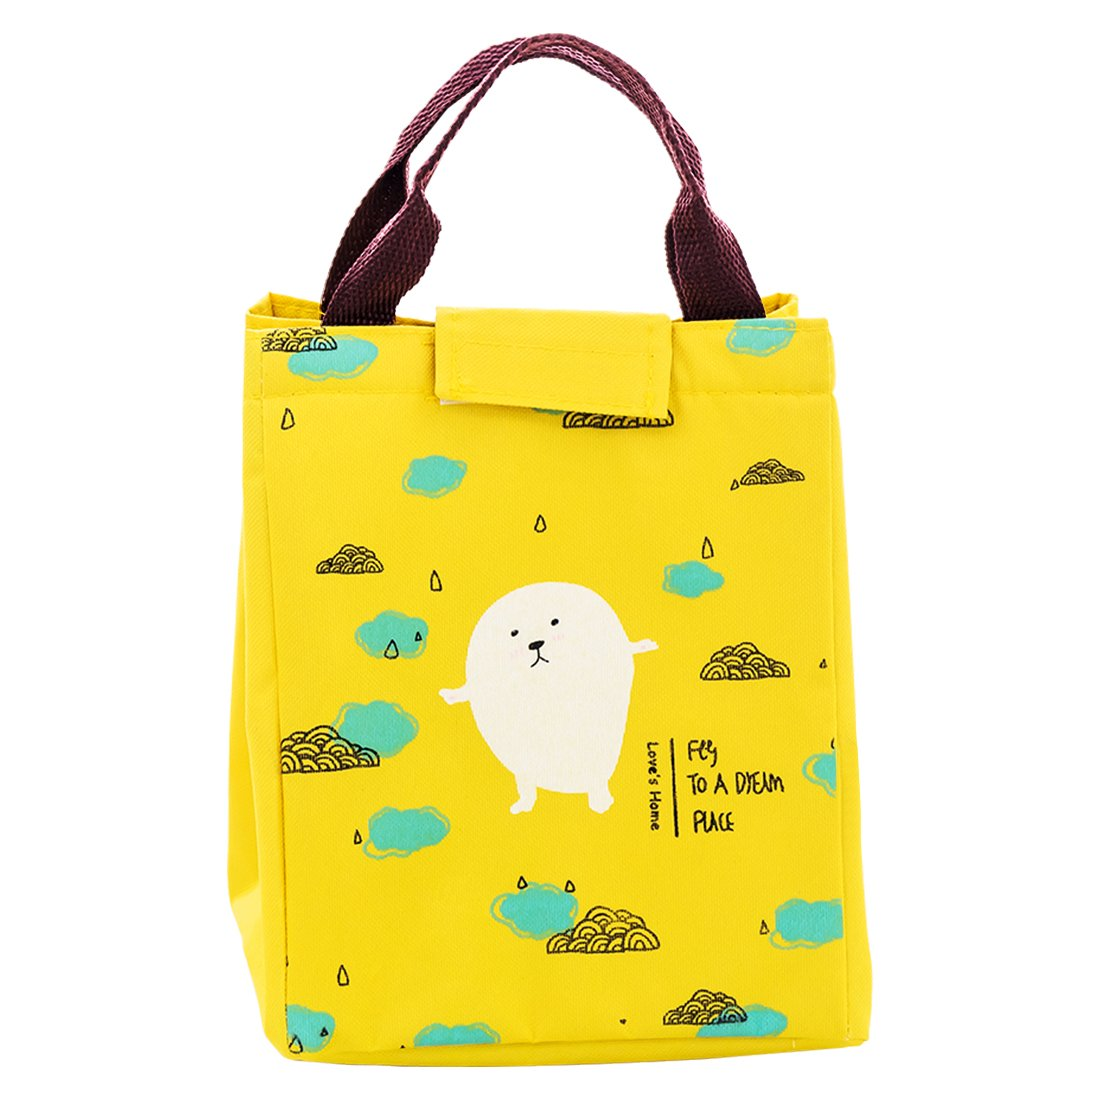 Oyachic Thermal Lunch Bag Insulated Tote Leakproof Zipper Bag with Velcro Closure Cute Cloud Pattern for Office, School and Picnic (Yellow Rain)